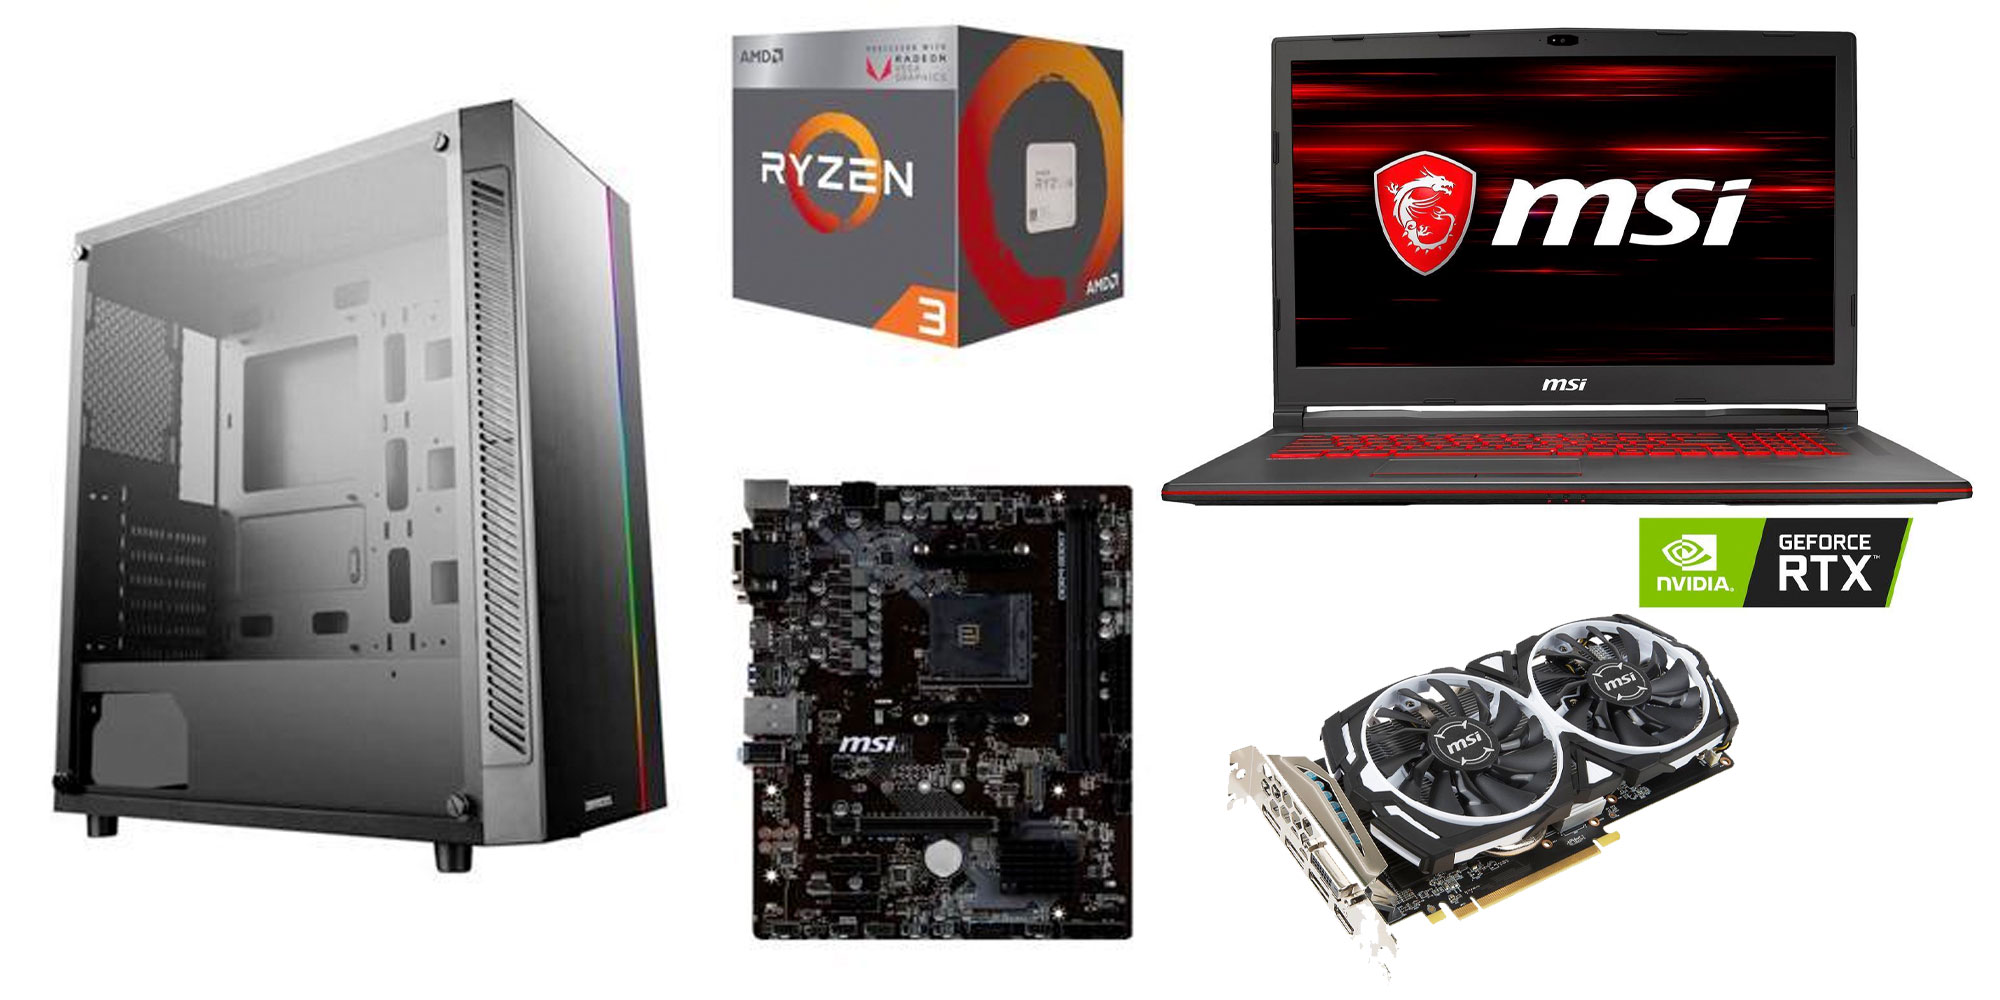 PC Gaming Deals from $20: RTX 2060 laptops, case/processor/motherboard bundle, more